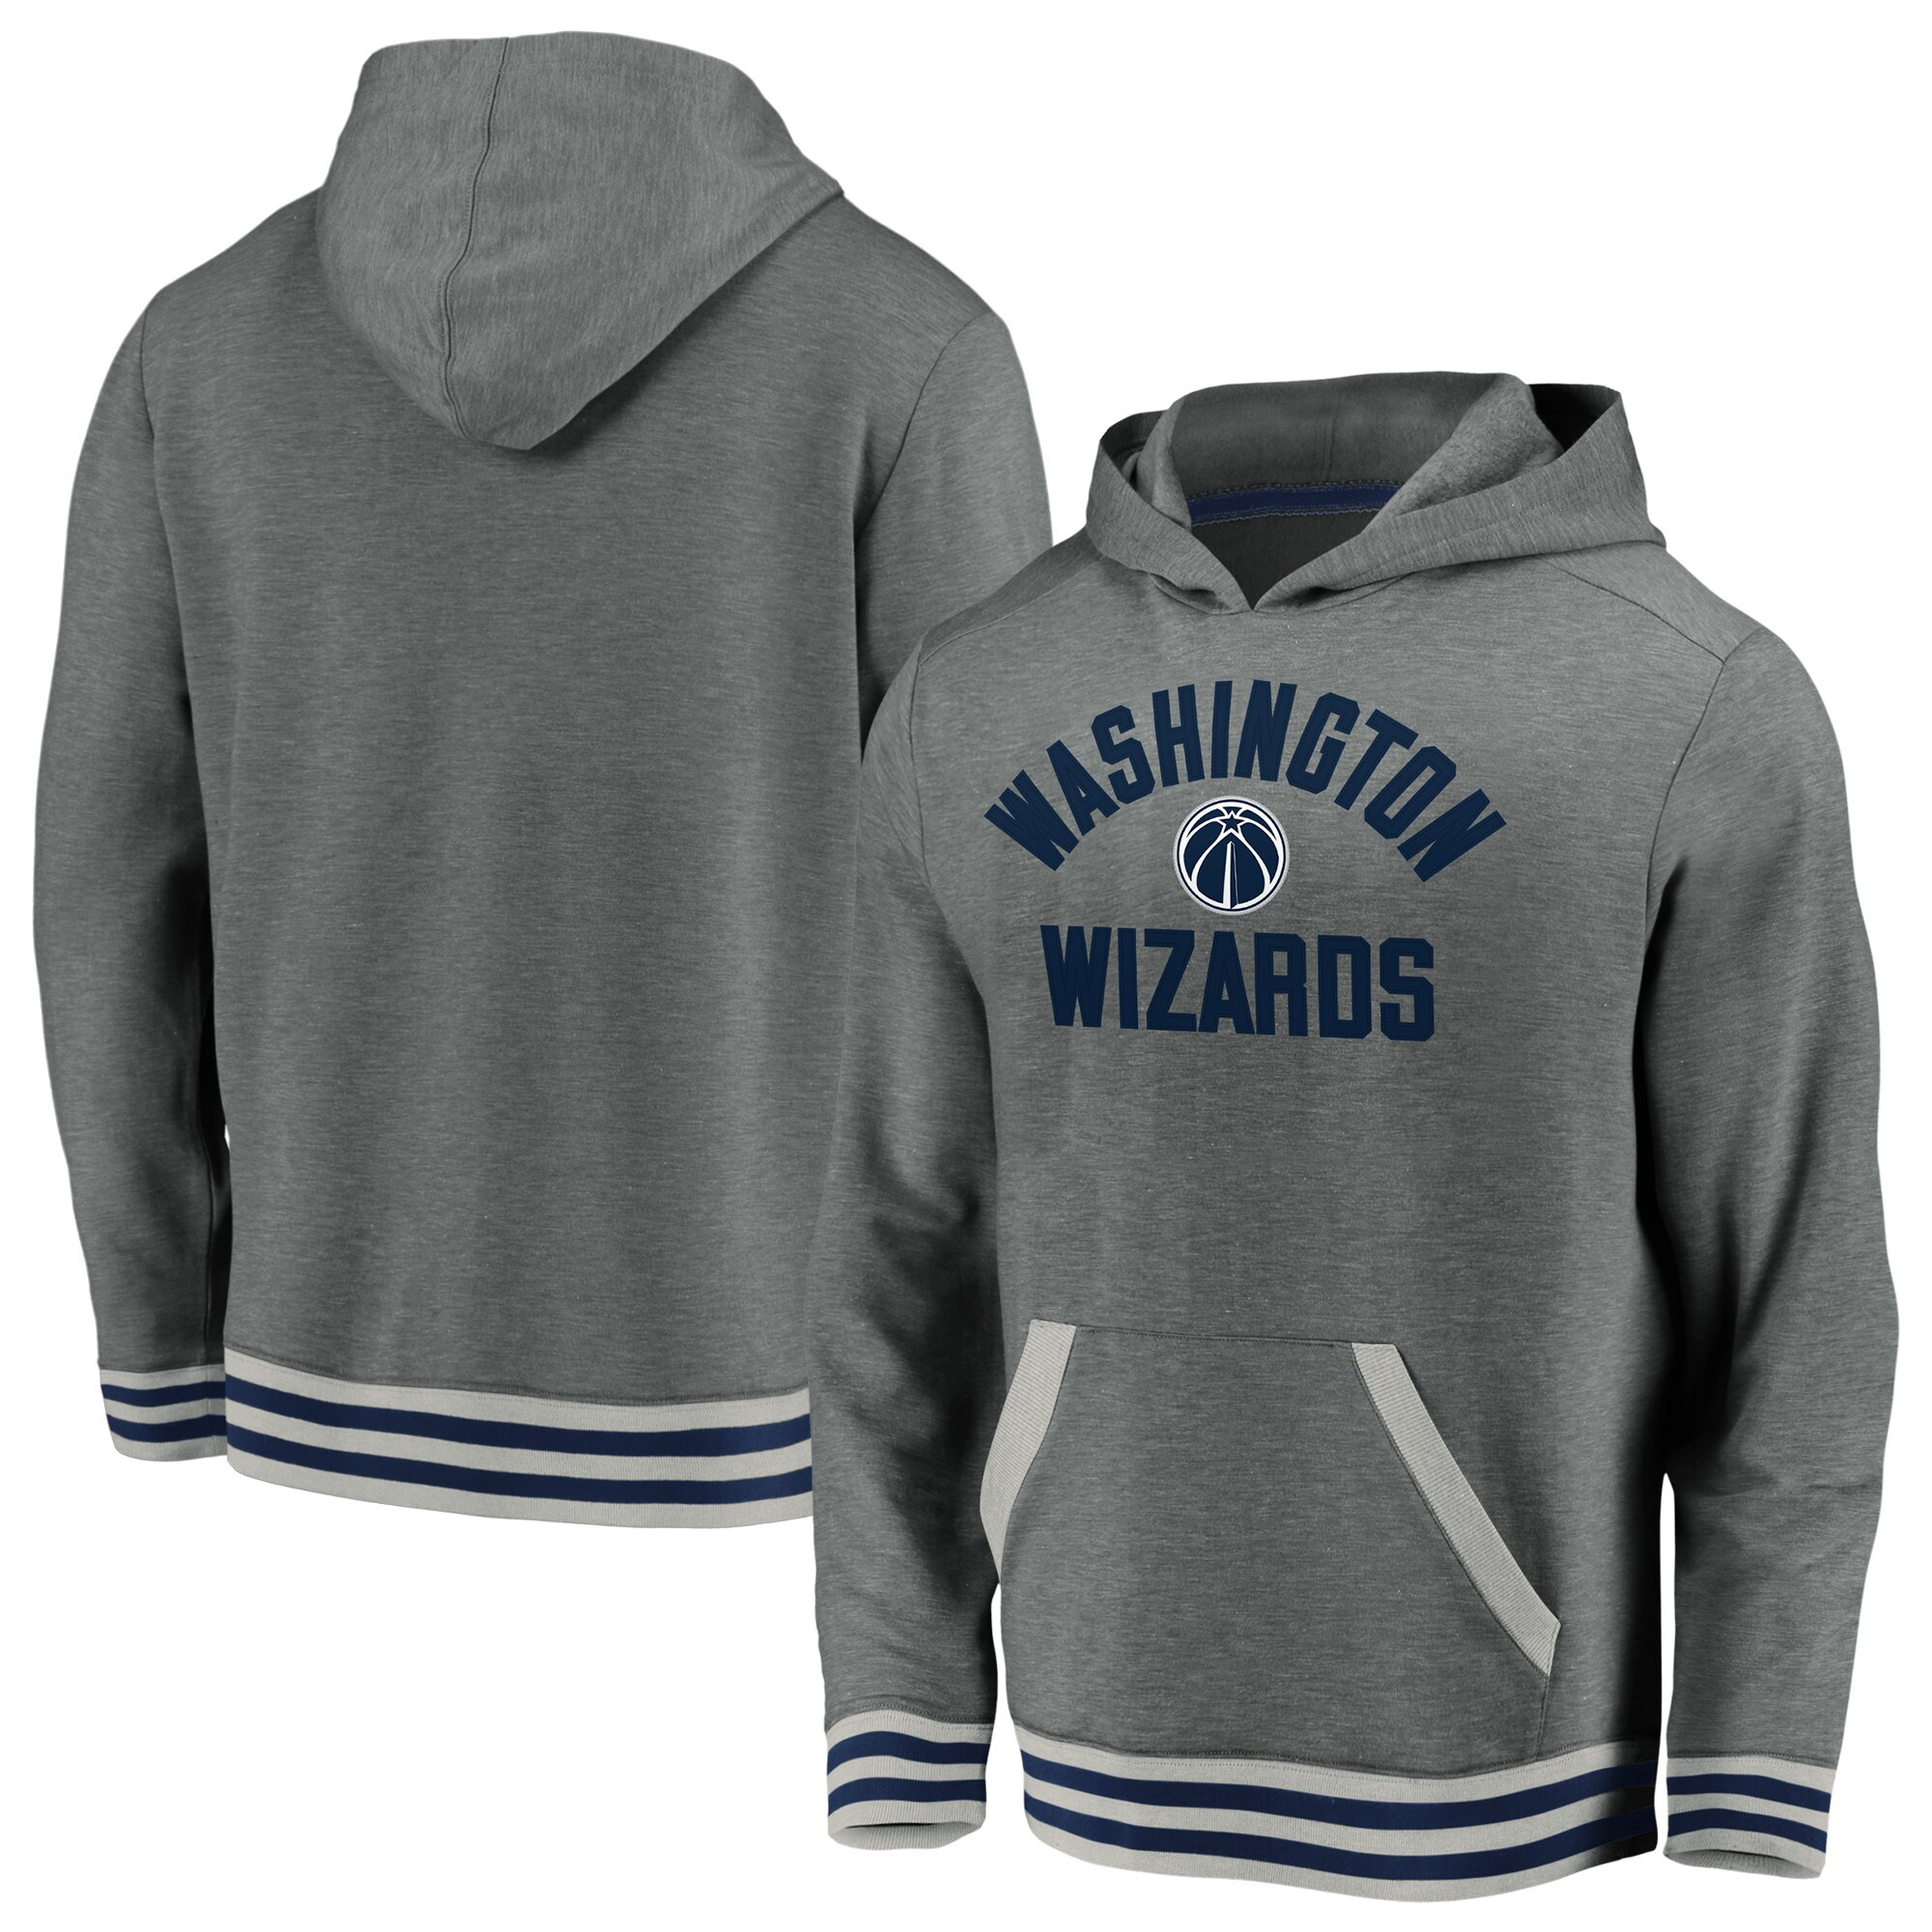 Washington Wizards Fanatics Branded True Classics Vintage Upperclassman Tri-Blend Pullover Hoodie - Gray